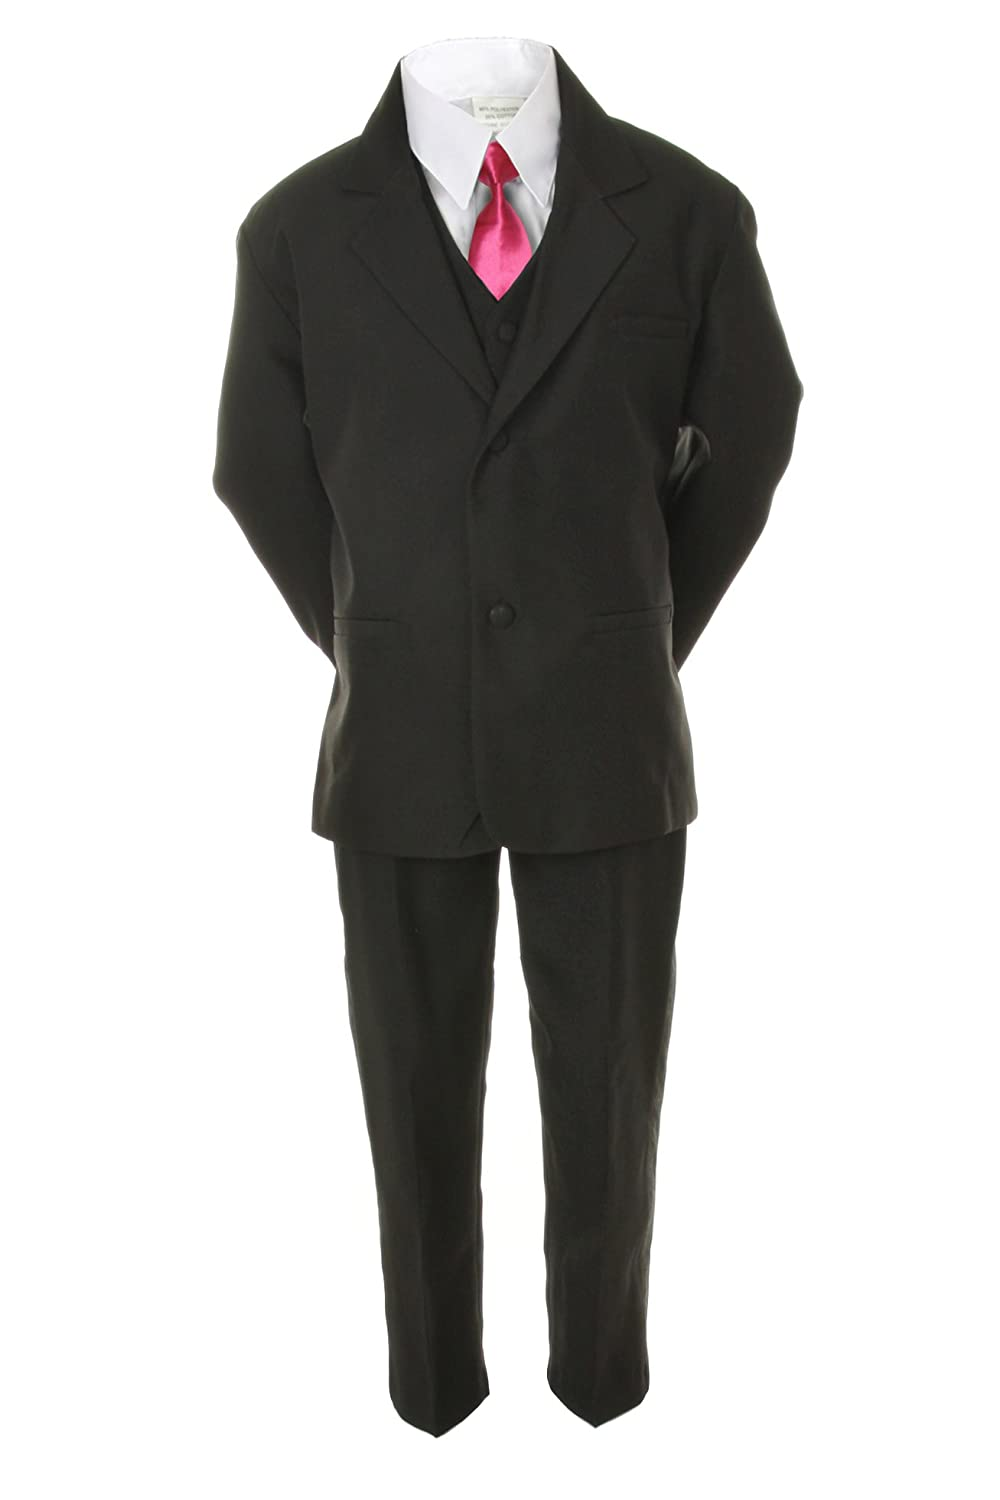 Unotux 6pc Boys Suit with Satin Fuchsia Necktie from Baby to Teen